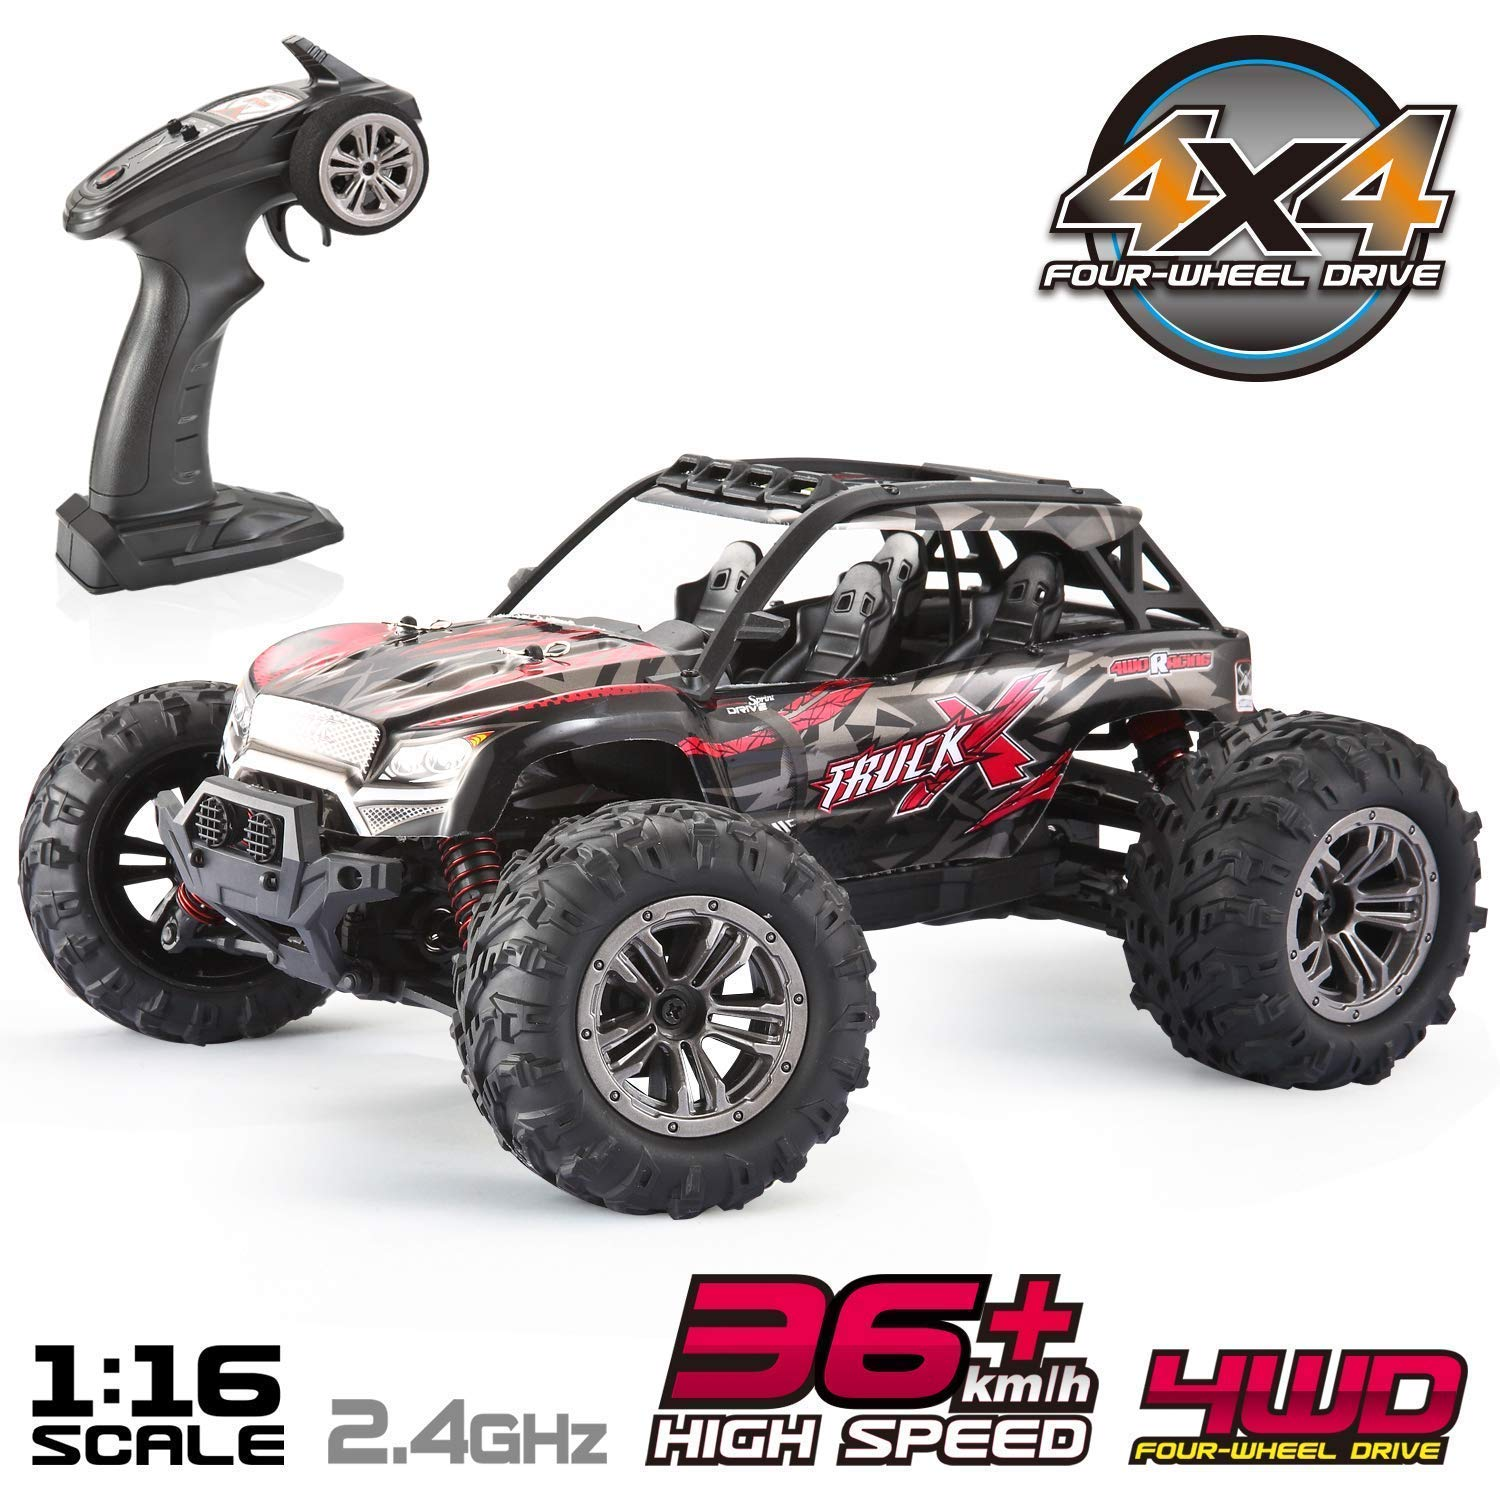 Best Electric RC Cars: Check Out These Great Vehicles 3